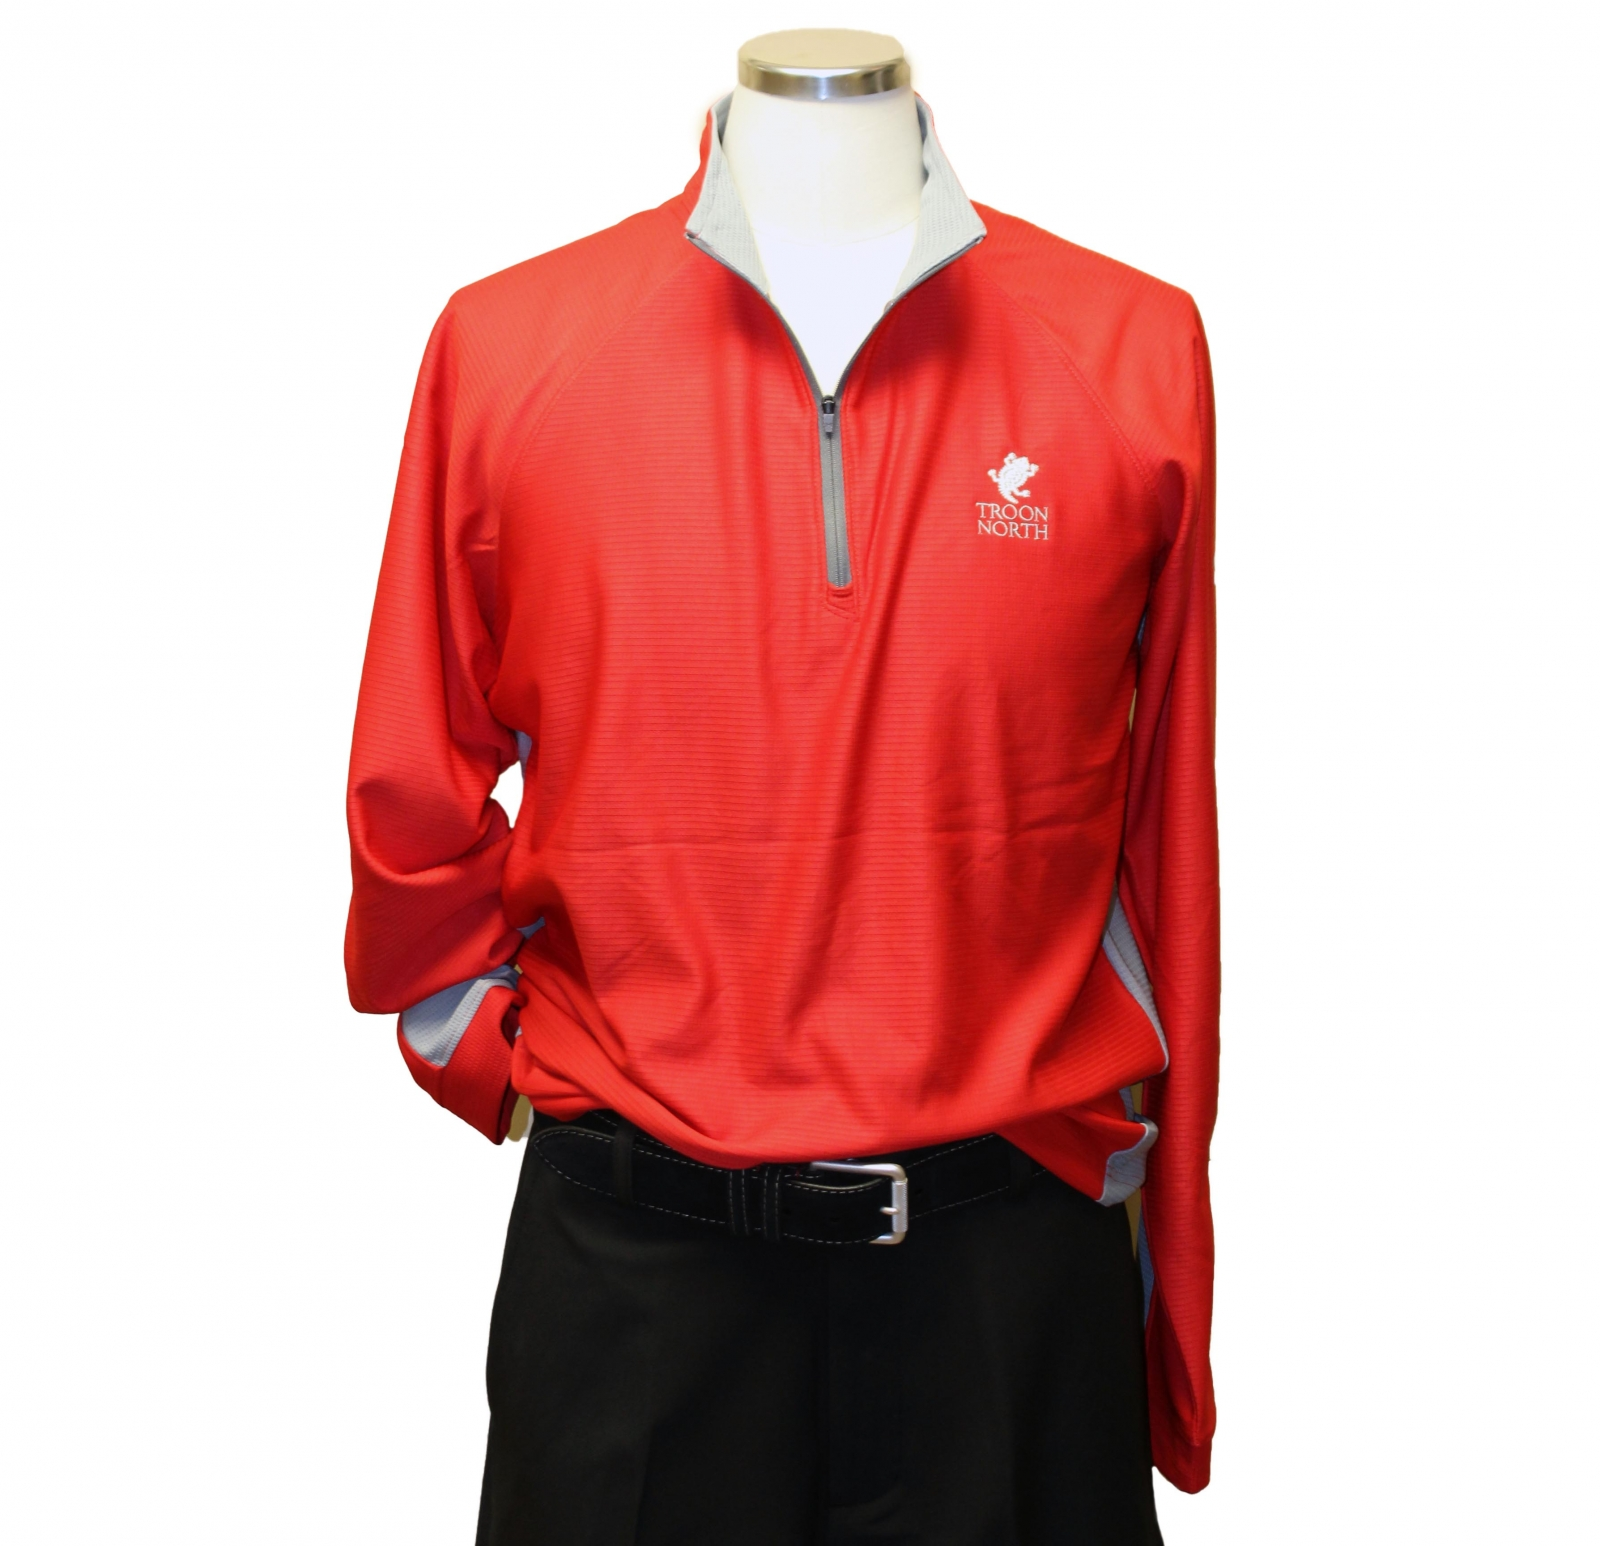 Under Armour 1/4 zip Fleece